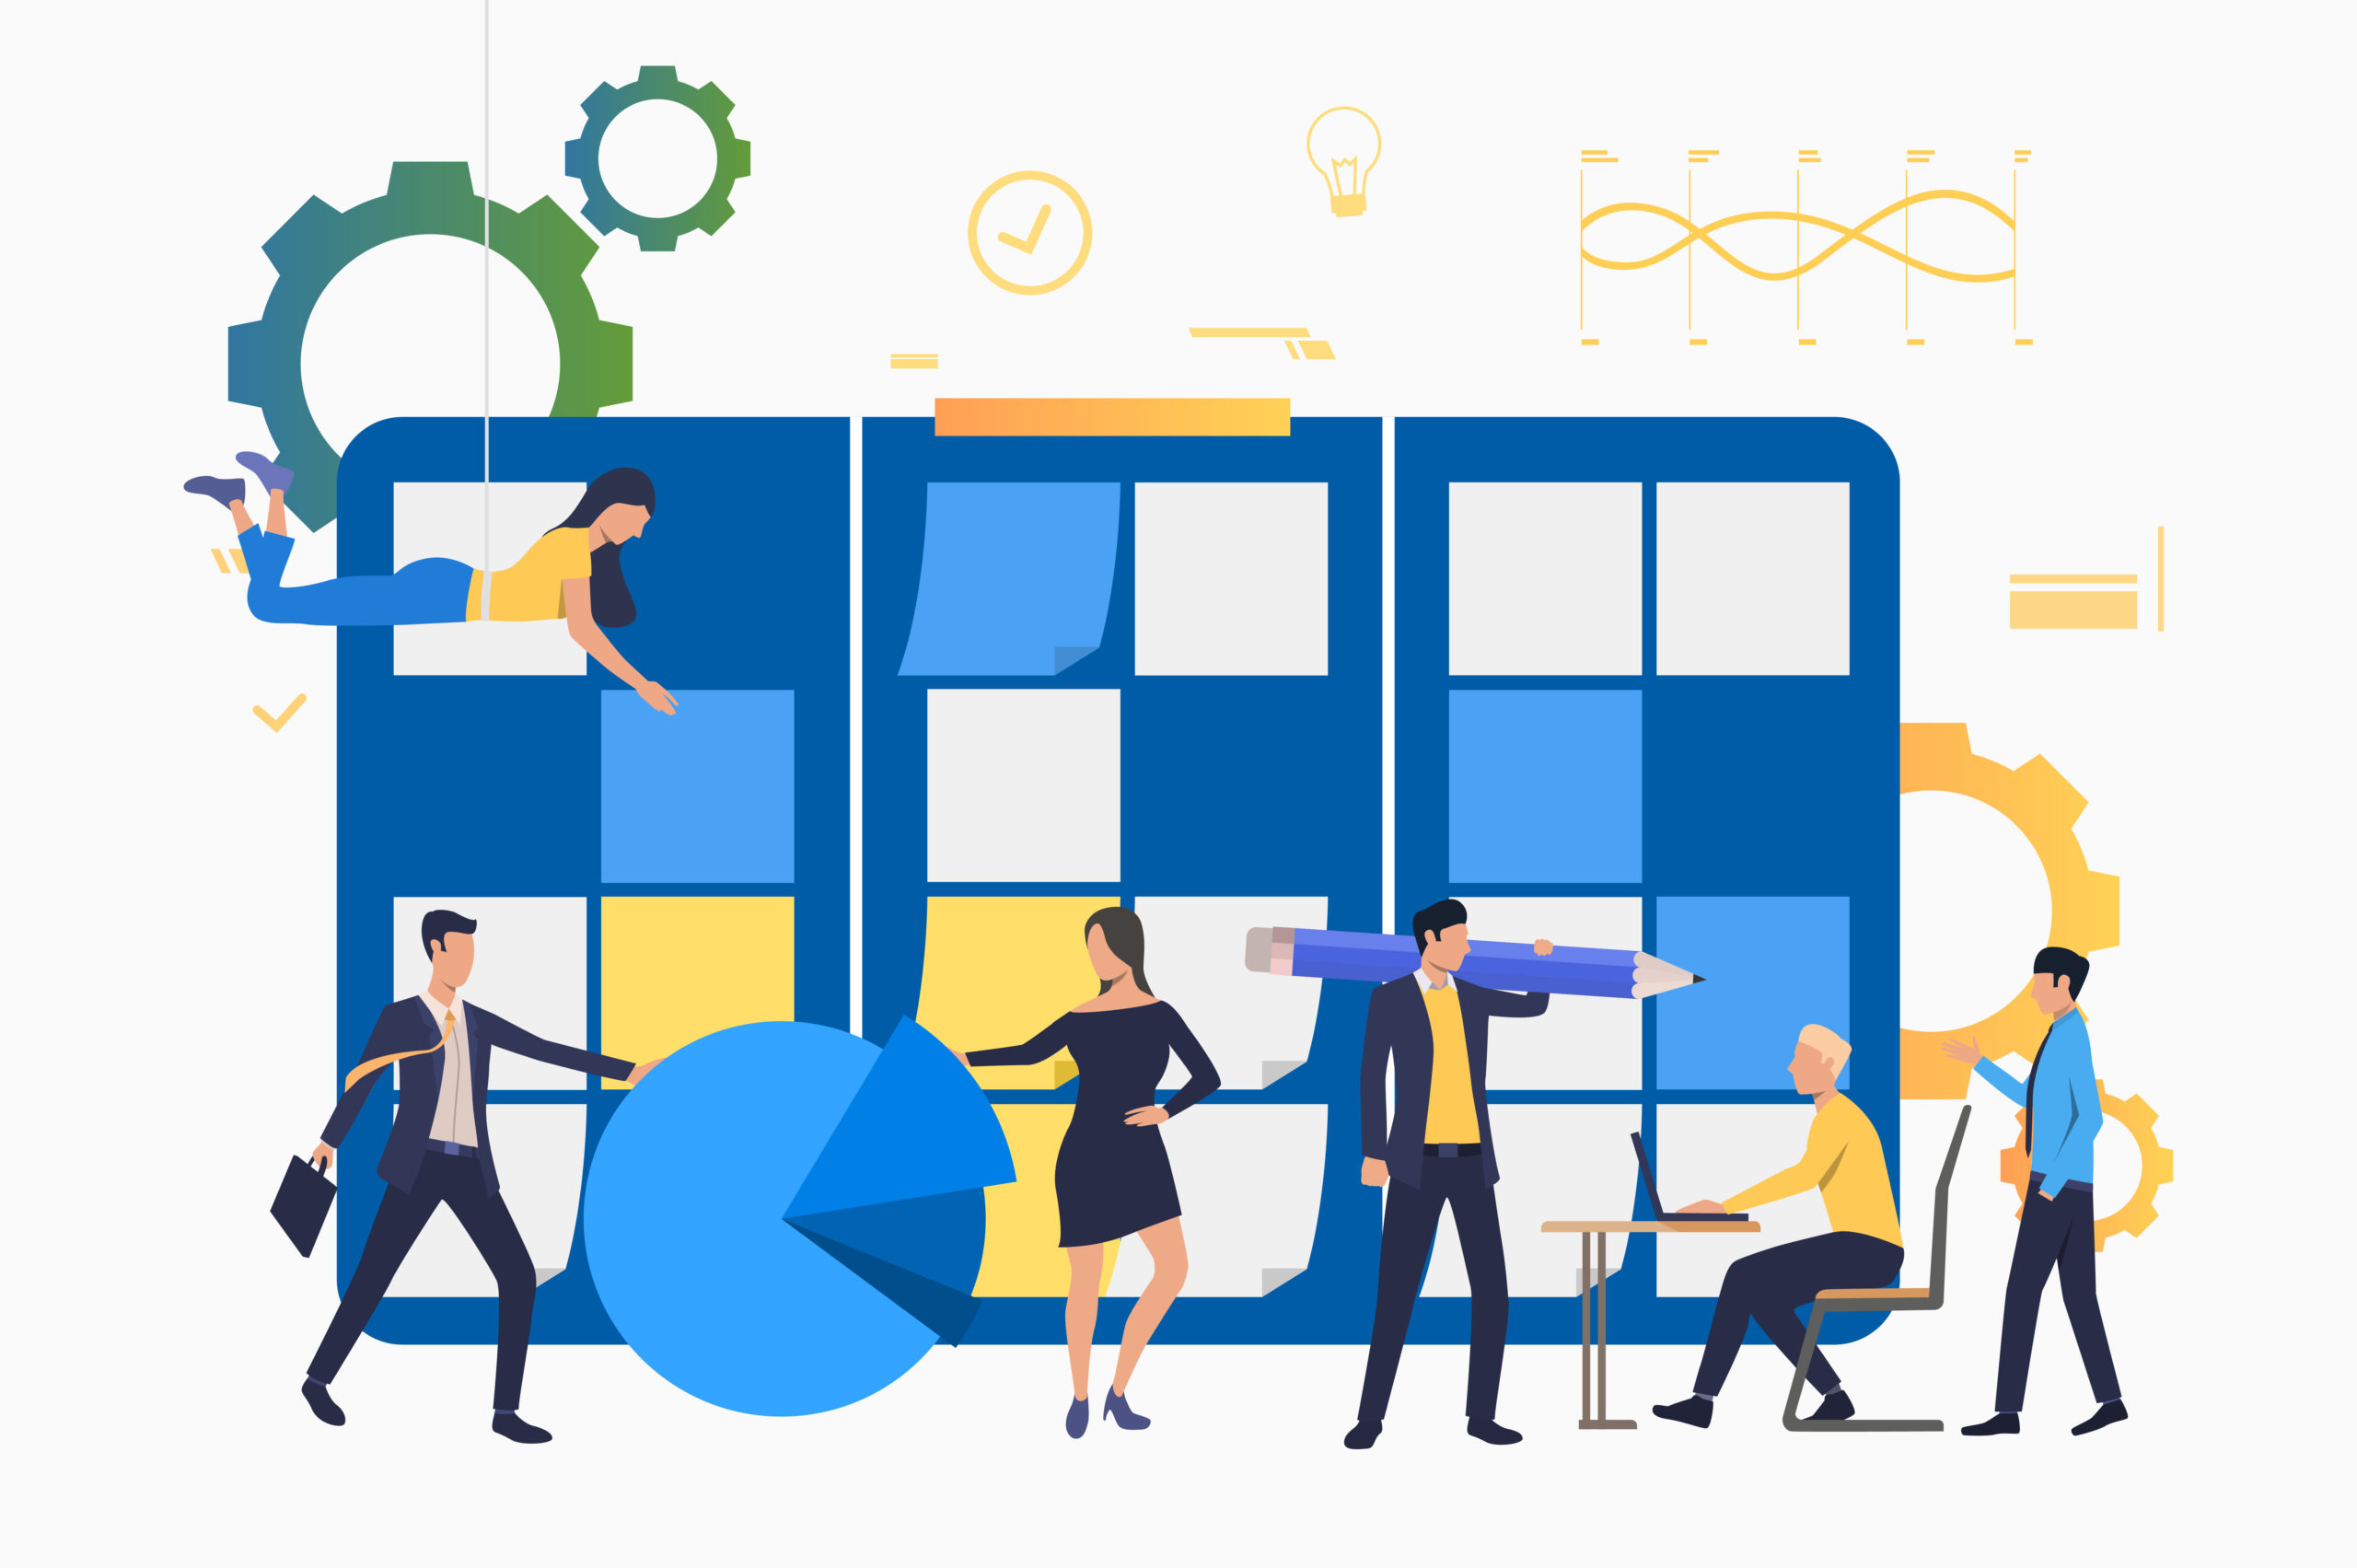 Professionals working in office. People holding pencil, working on laptop, sticking notes. Business concept. Vector illustration can be used for topics like team, teamwork, scrum meeting